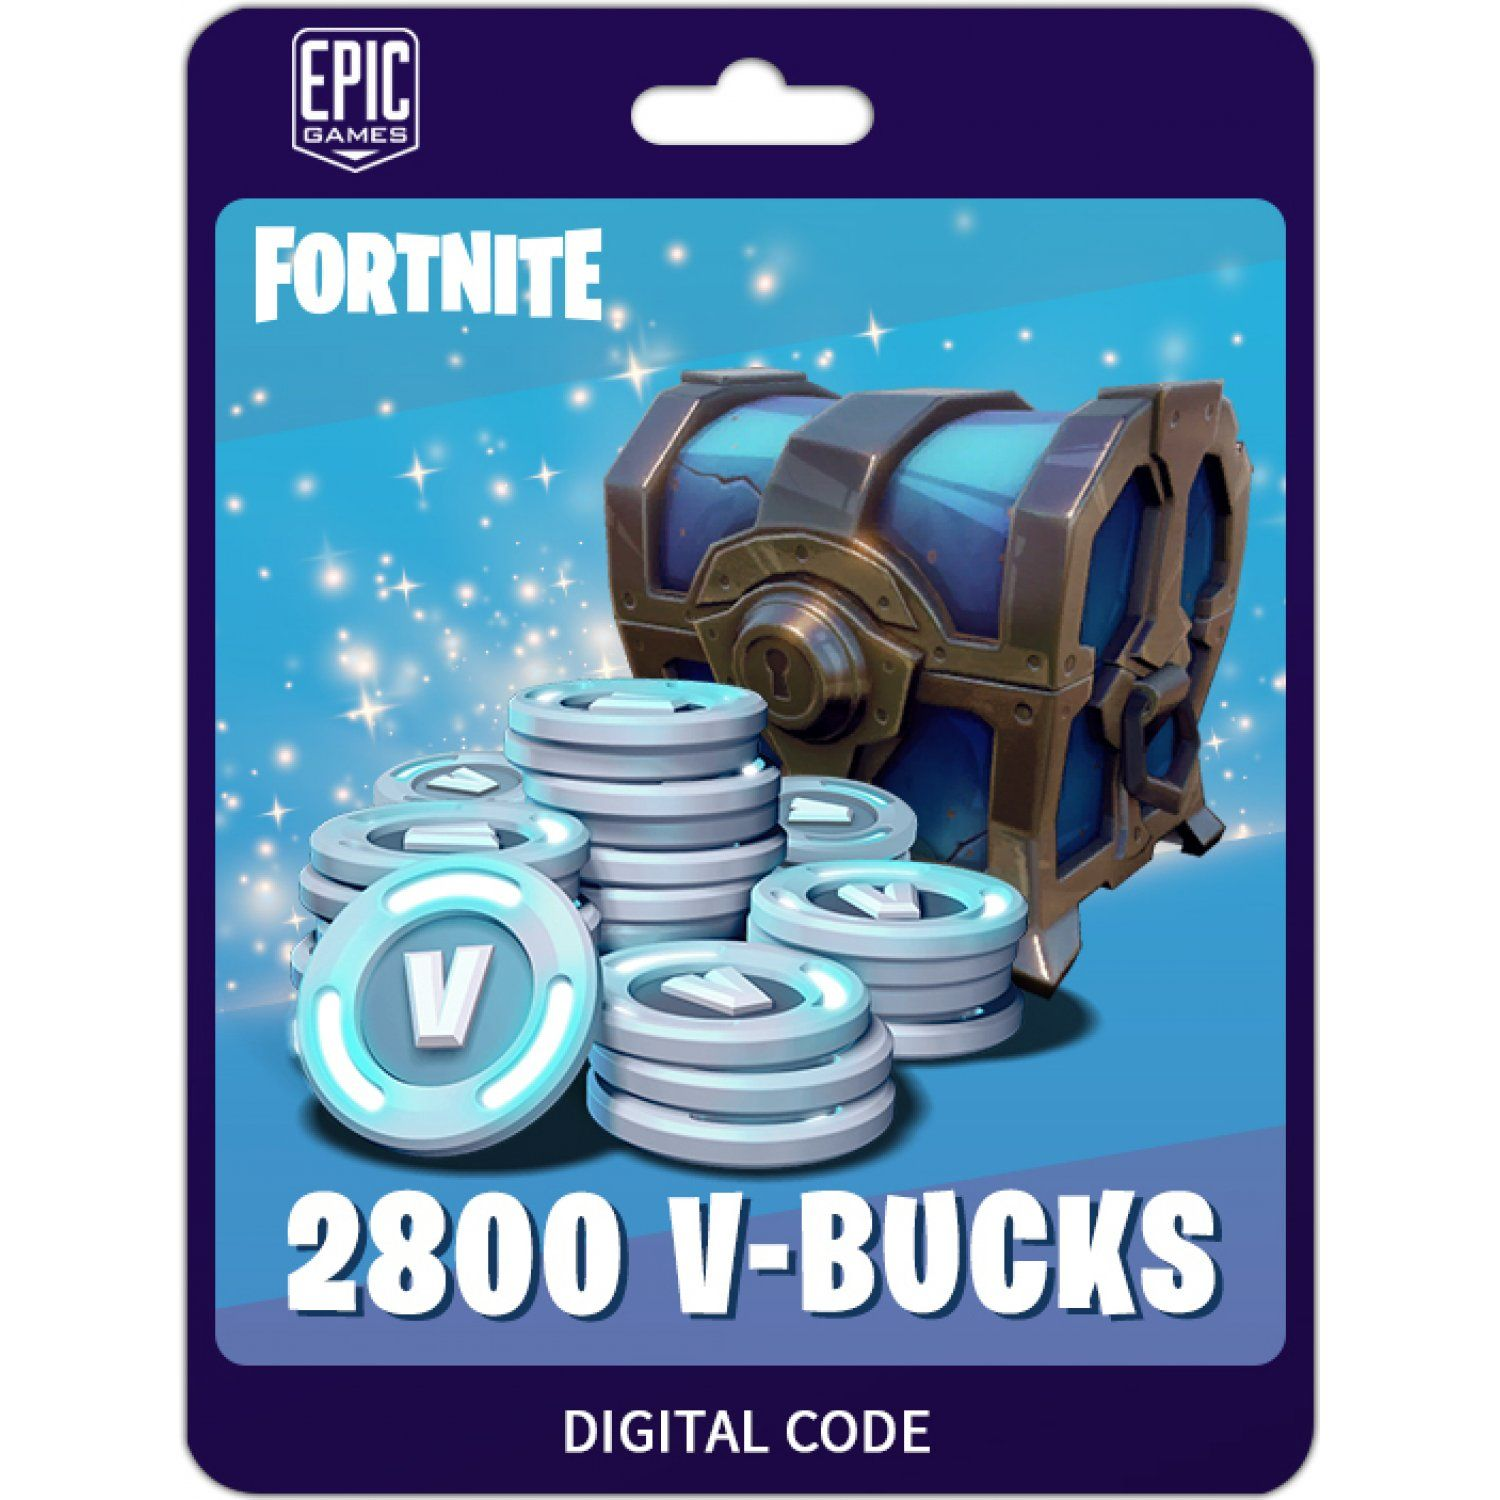 free robux gift card codes 2021 april